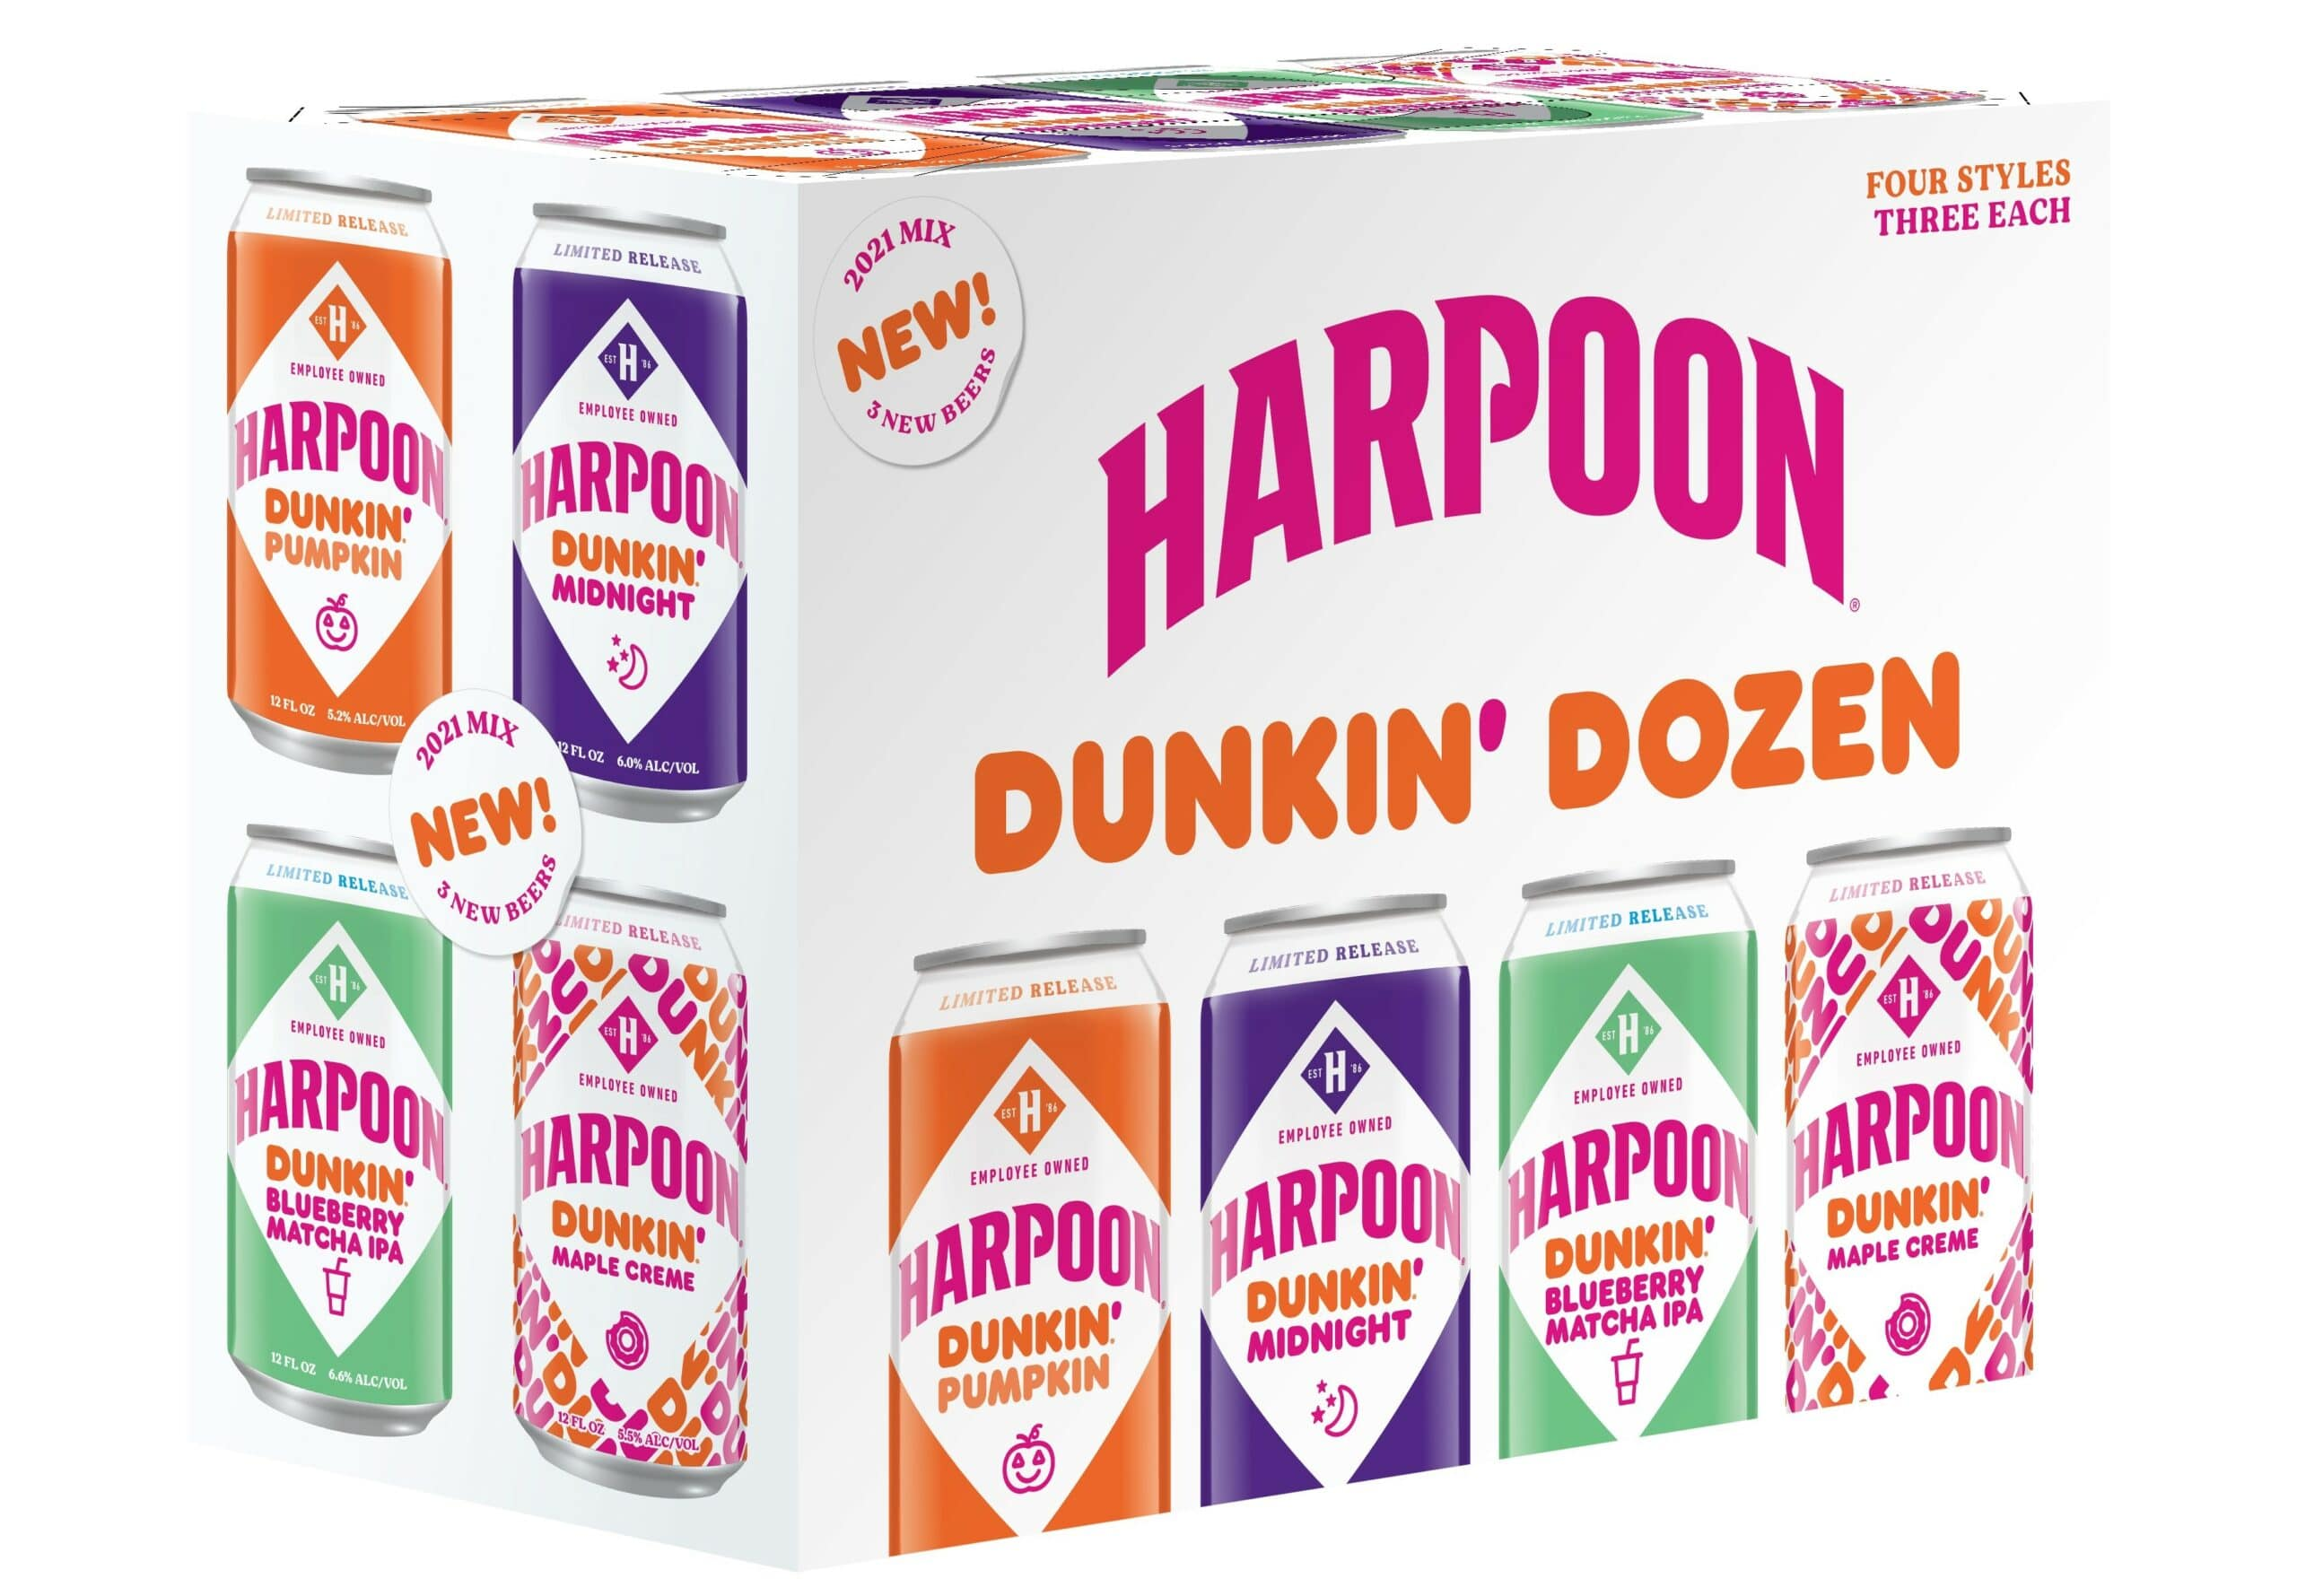 Harpoon Brewery is releasing 3 new Dunkin' Donuts-inspired beers for fall 21